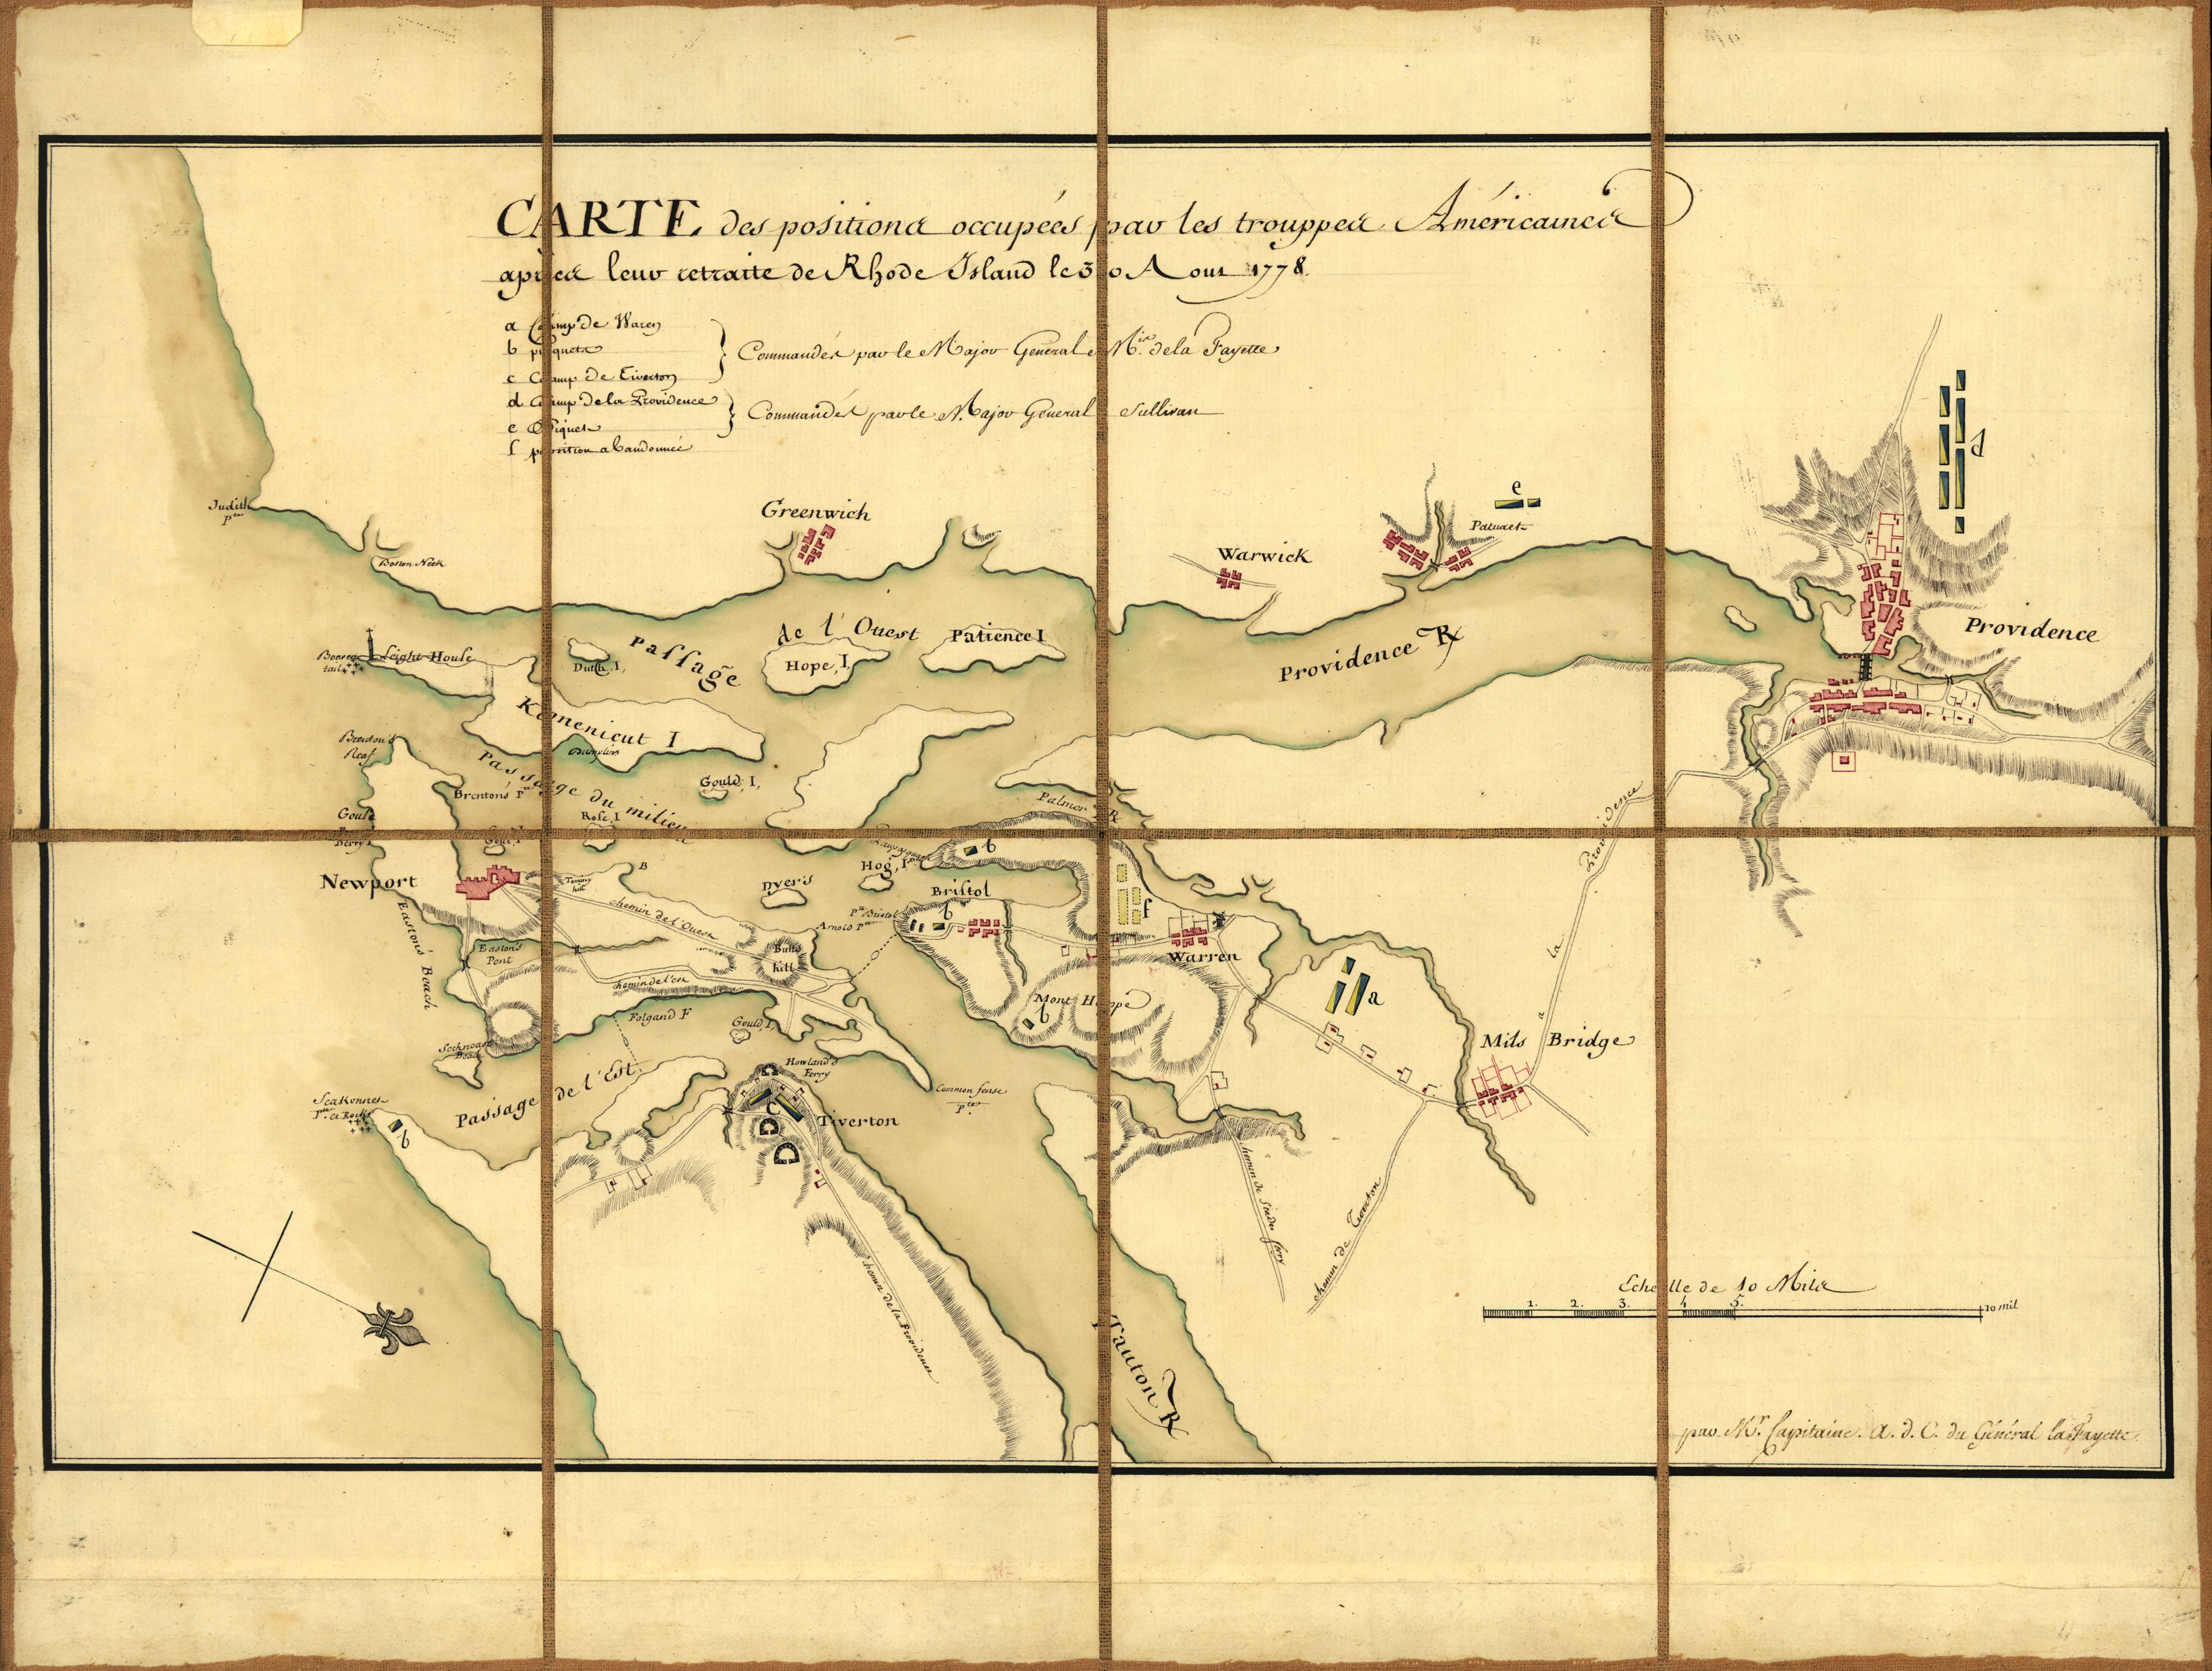 A French military map prepared for the Marquis de Lafayette showing American troop positions on August 30, 1778, after the Battle of Rhode Island.